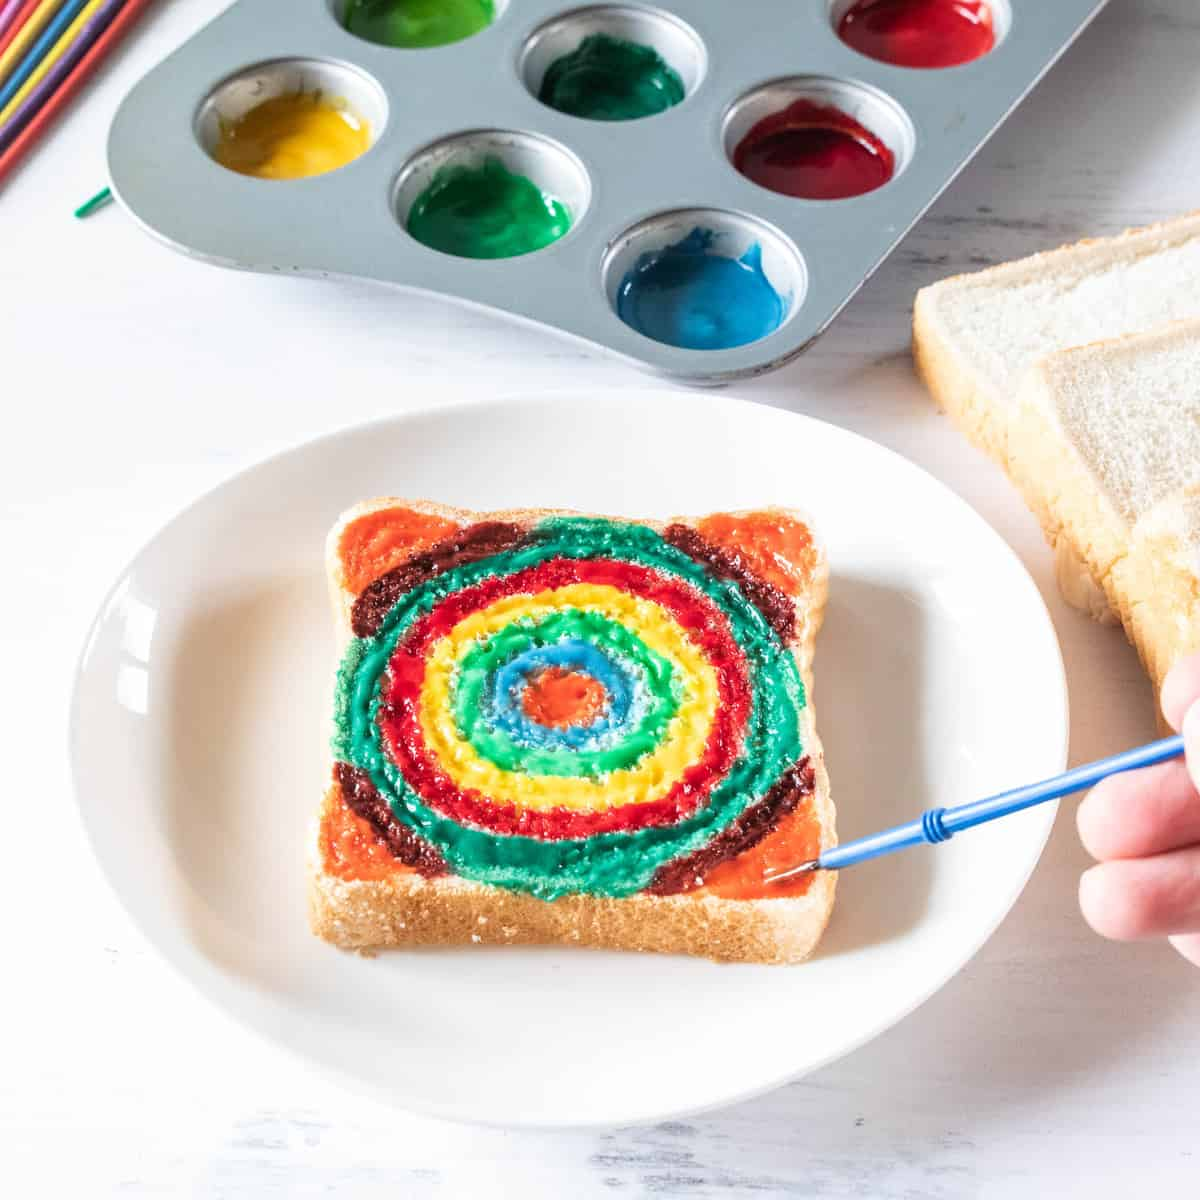 slice of bread being painted with edible paint